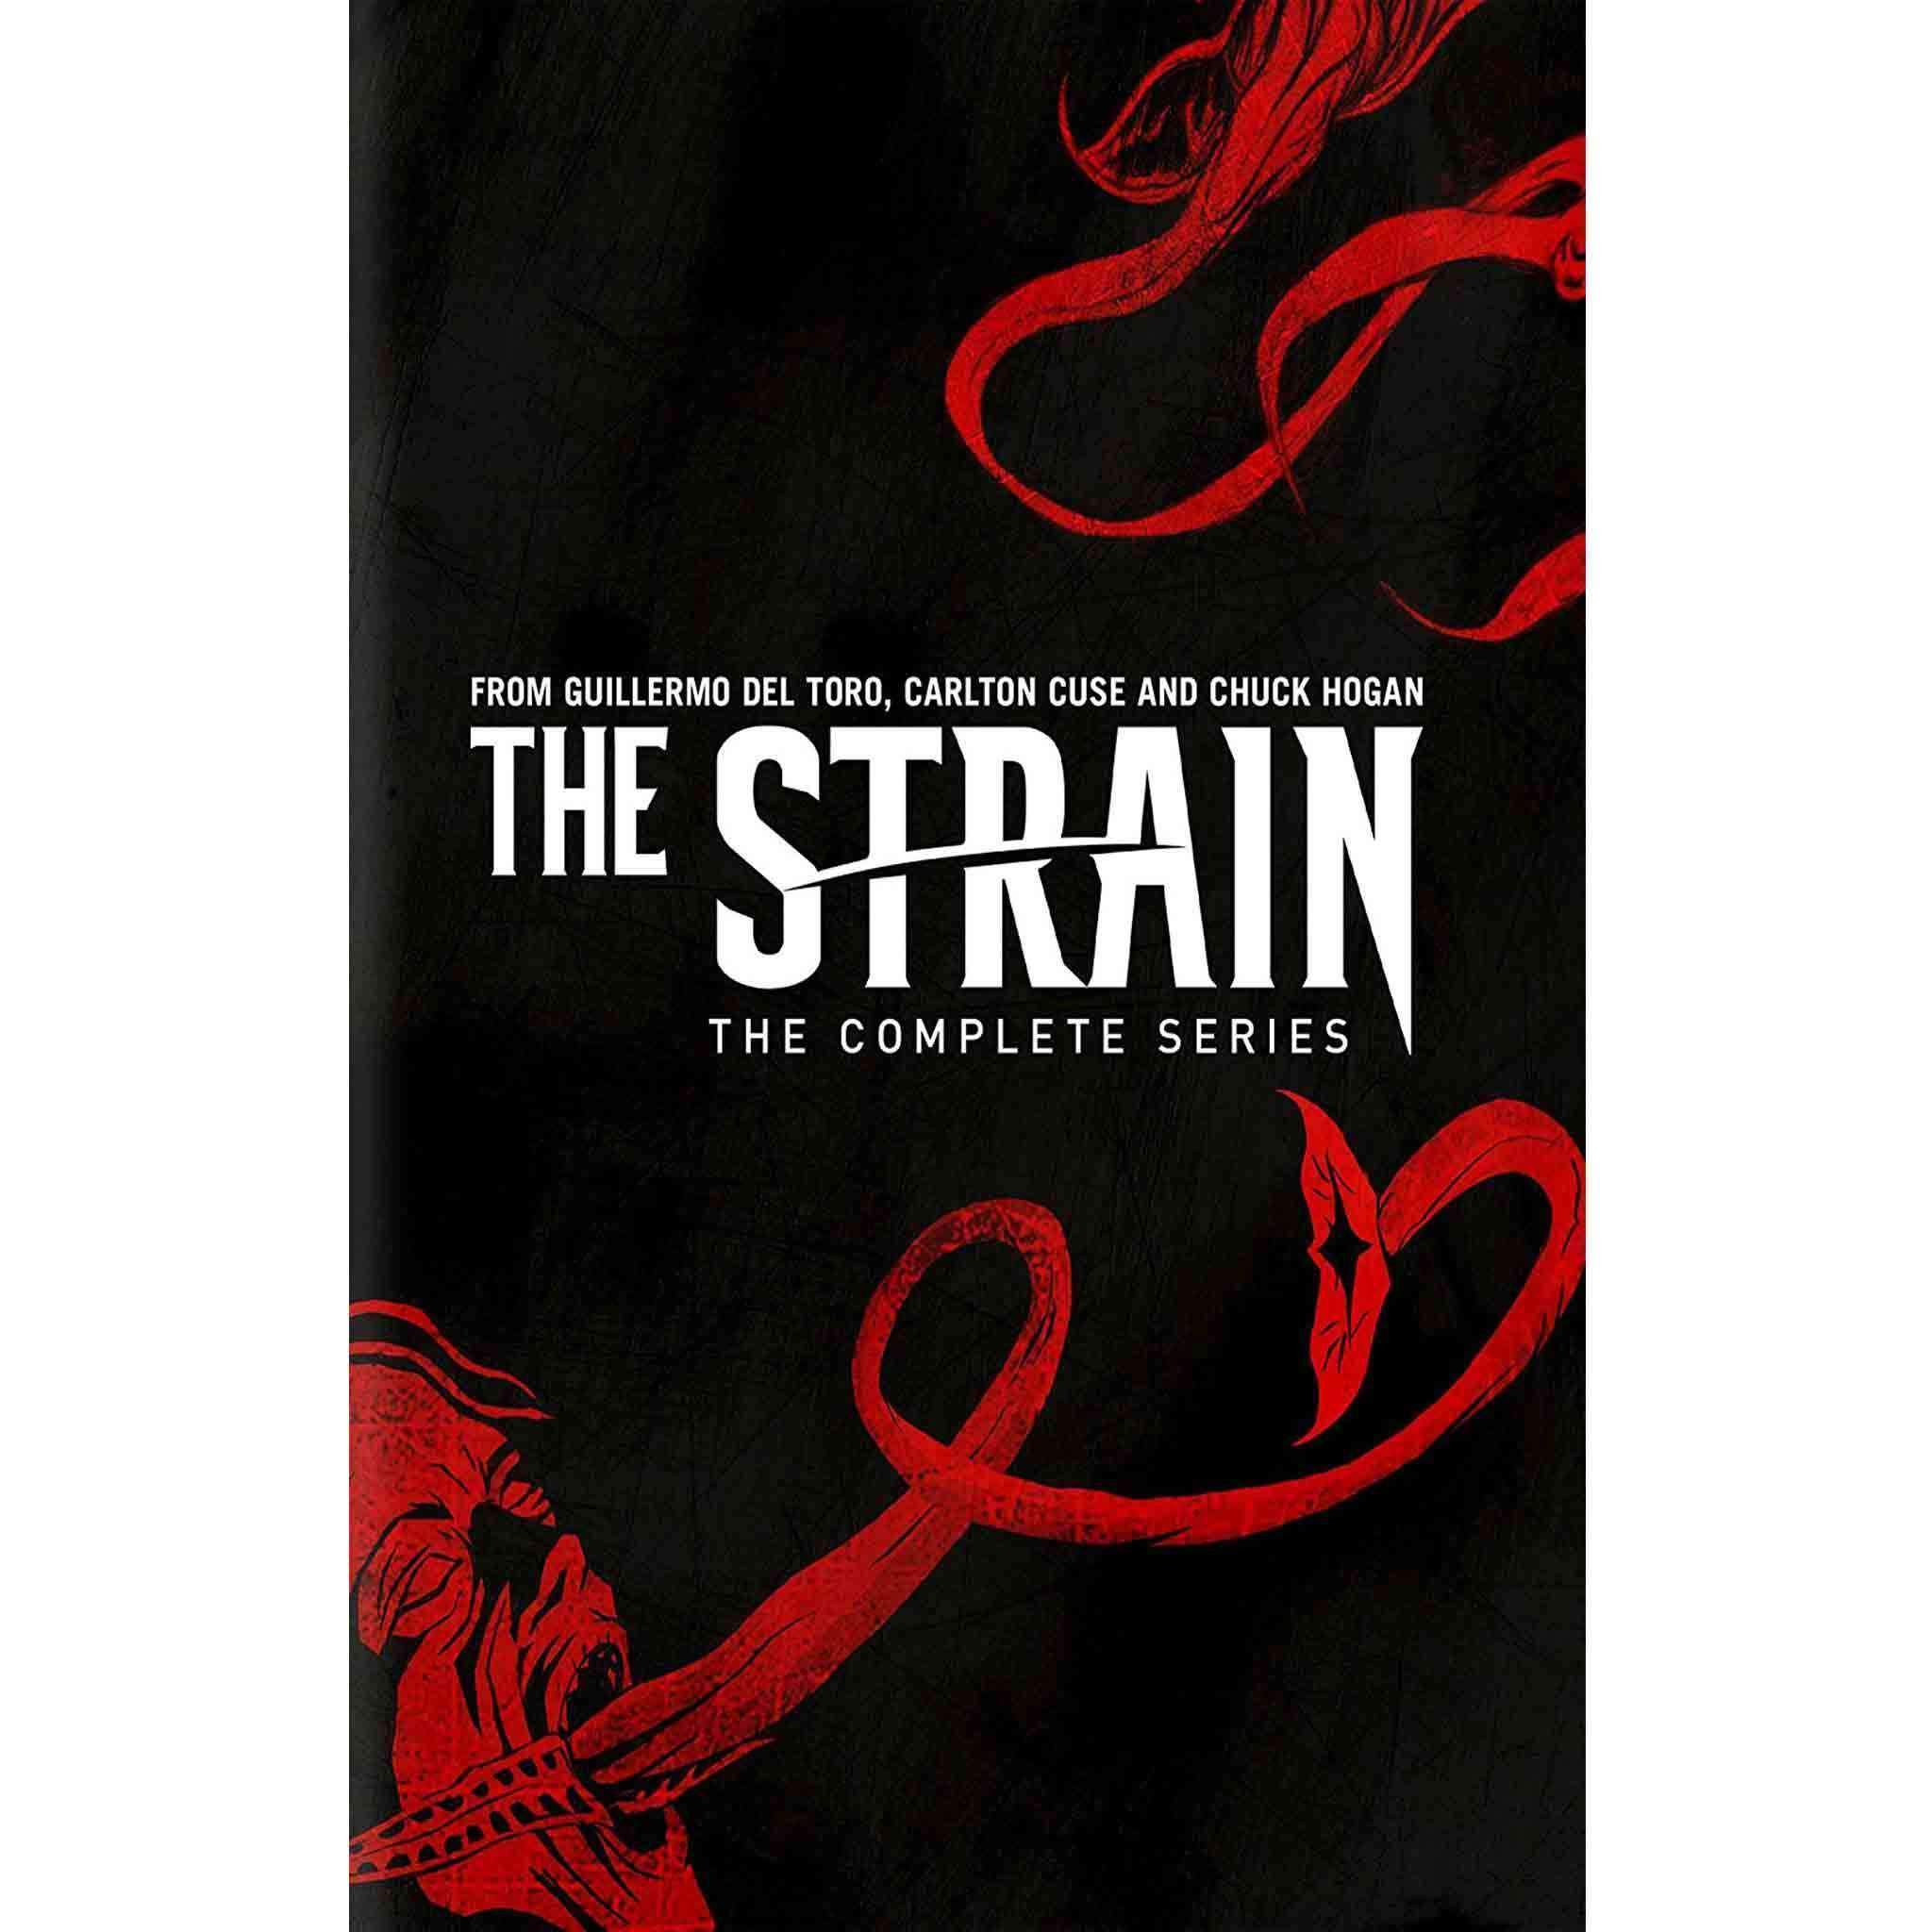 The Strain Seasons 1-4 Boxset (DVD) 20th Century Fox DVDs & Blu-ray Discs > DVDs > Box Sets